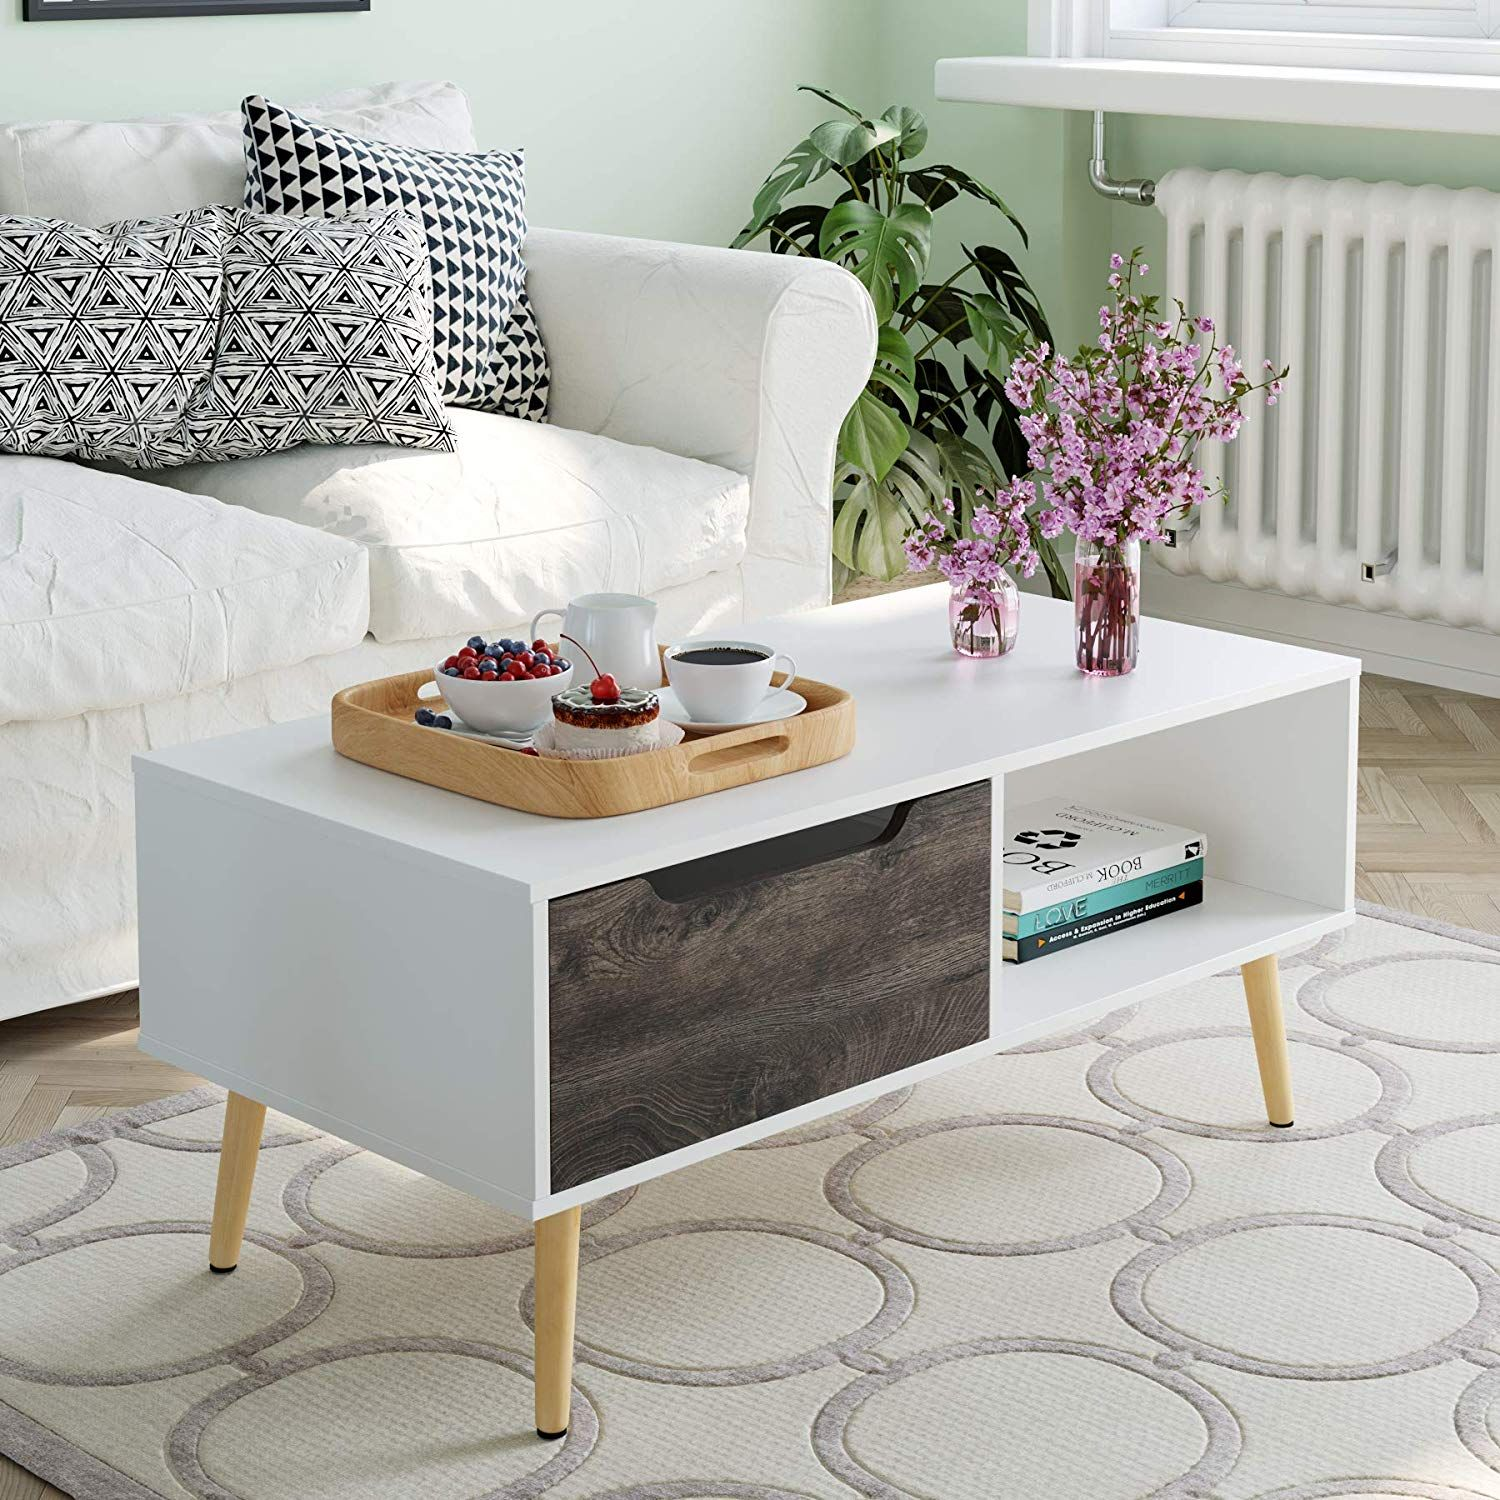 Coffee Table In 2020 Living Room Tv Stand Living Room Table Diy Apartment Decor #side #table #for #living #room #with #drawers